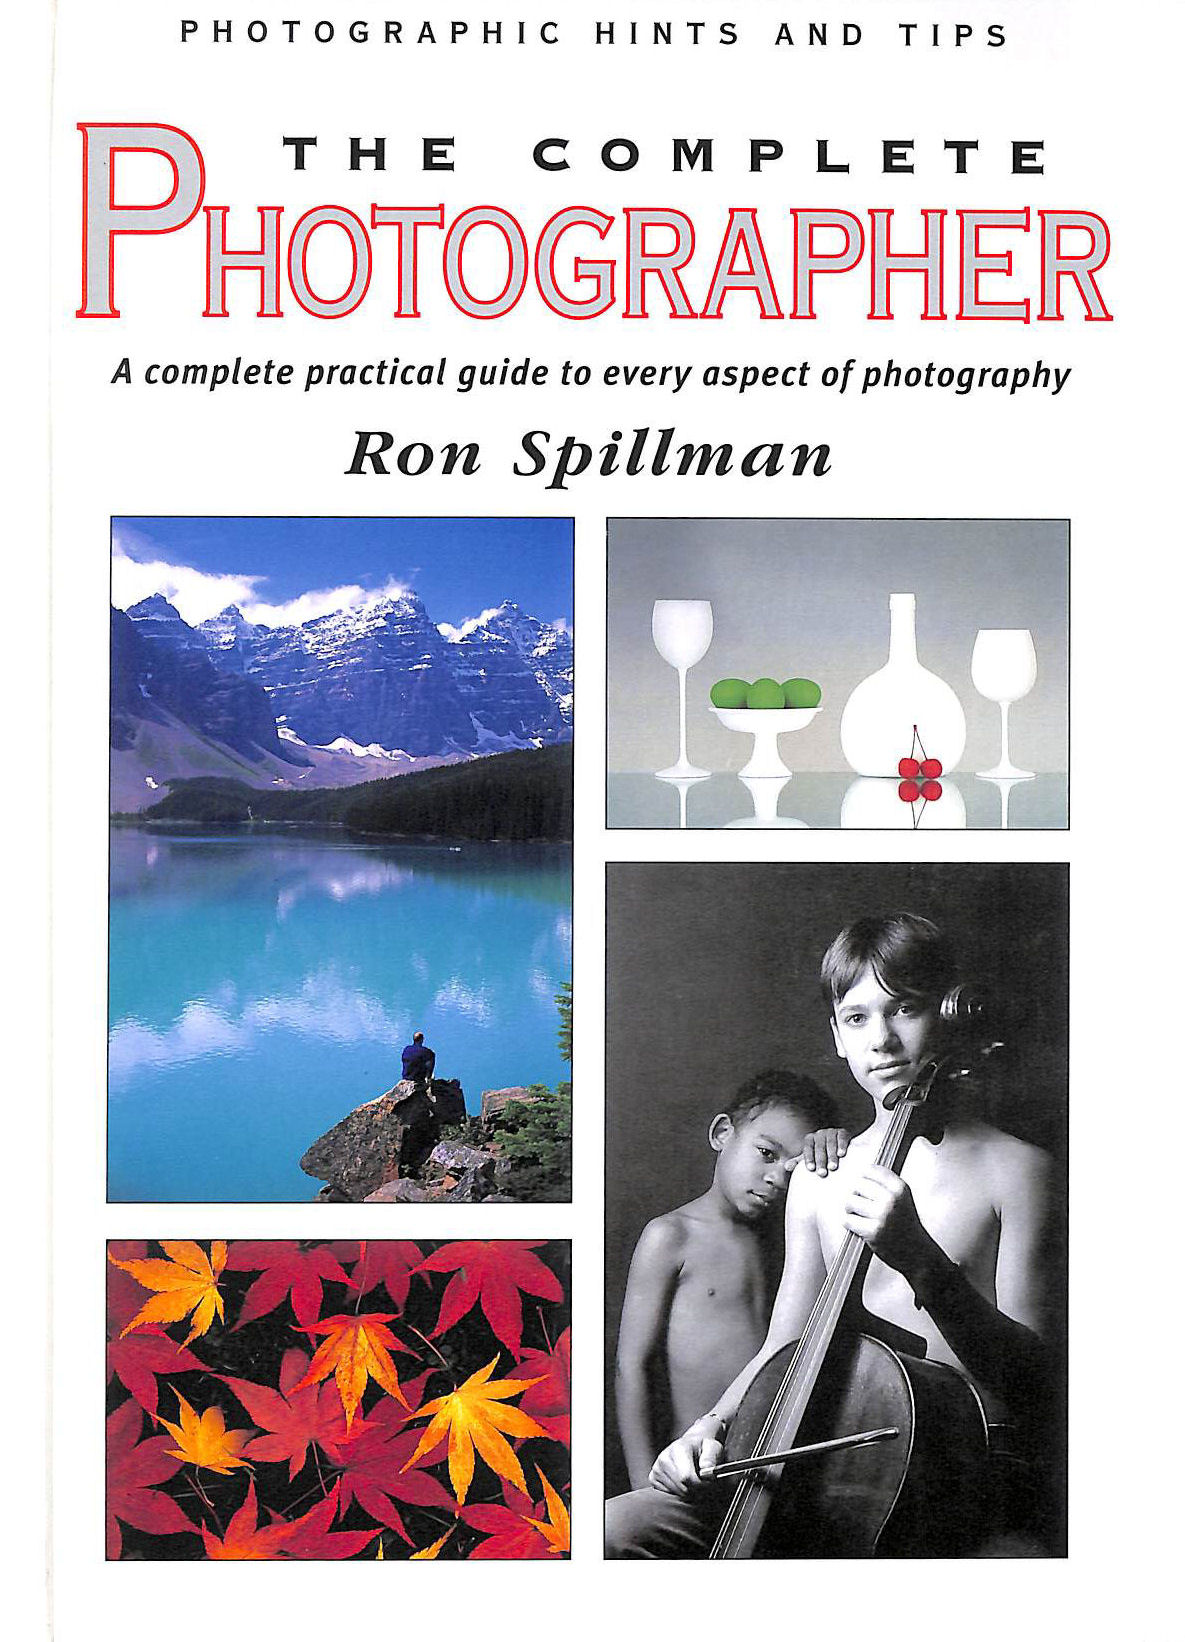 Image for The Complete Photographer (Photographic hints and tips)